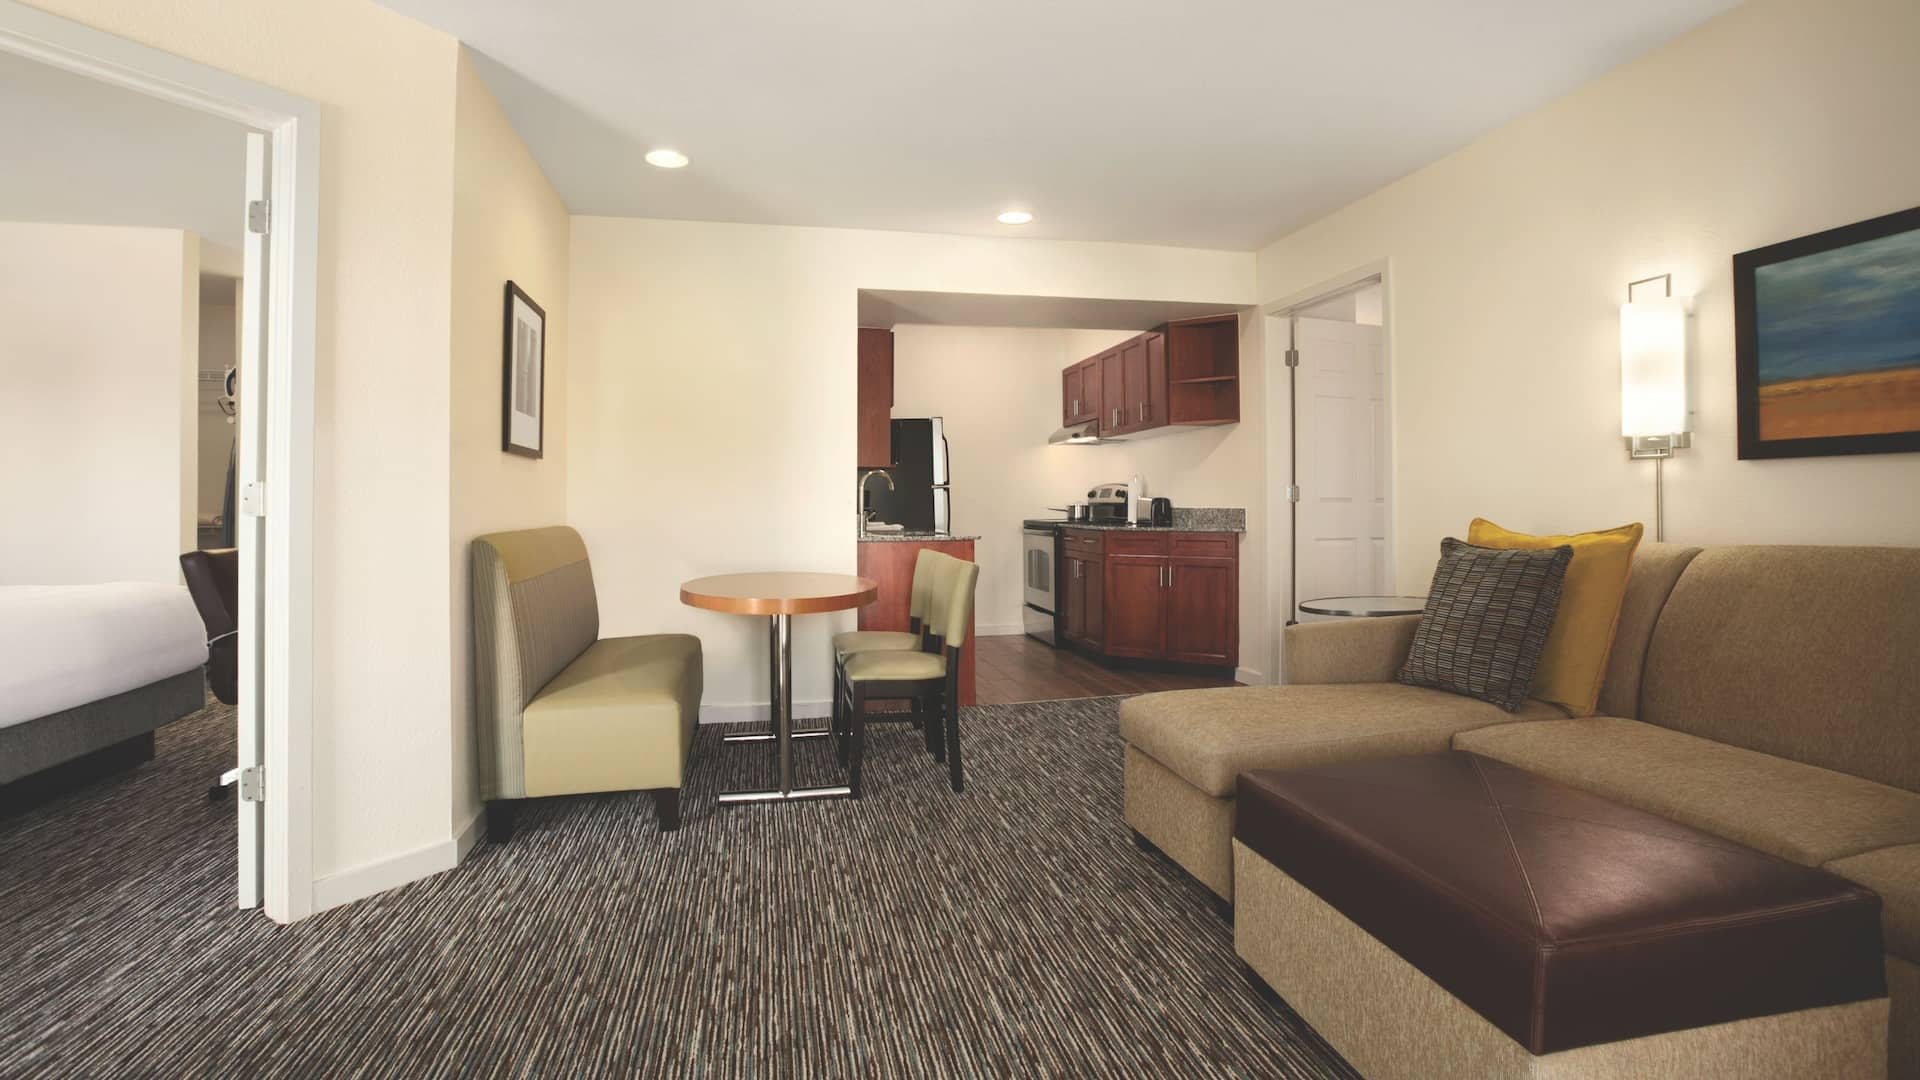 Hyatt House Two Bedroom Suite